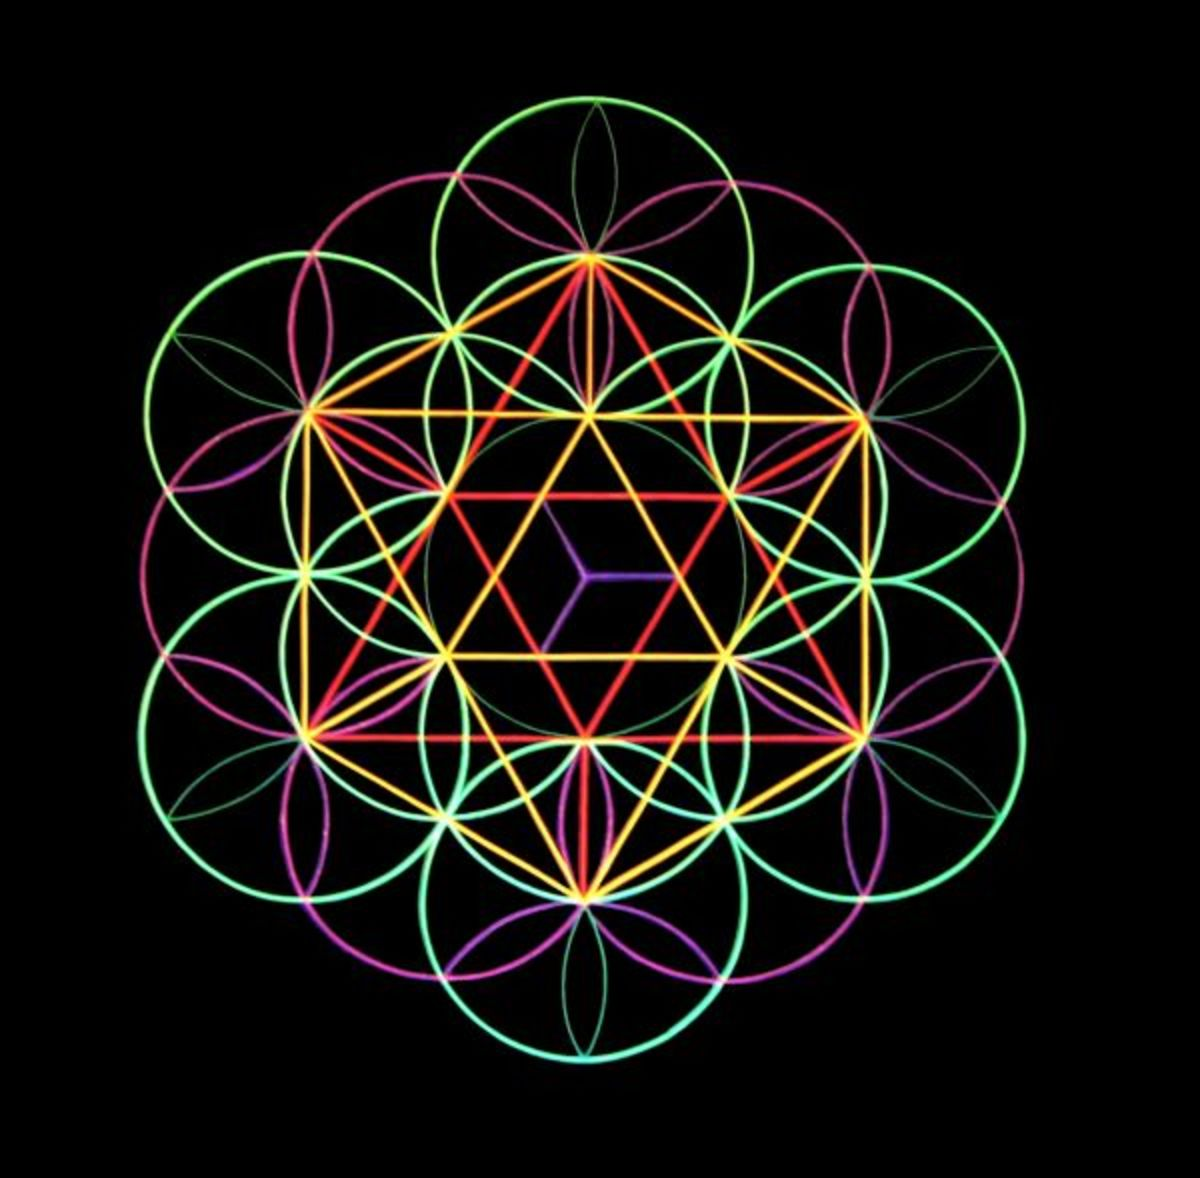 Notice that all of the platonic solids, can be made from the Flower of Life by connecting intersecting lines